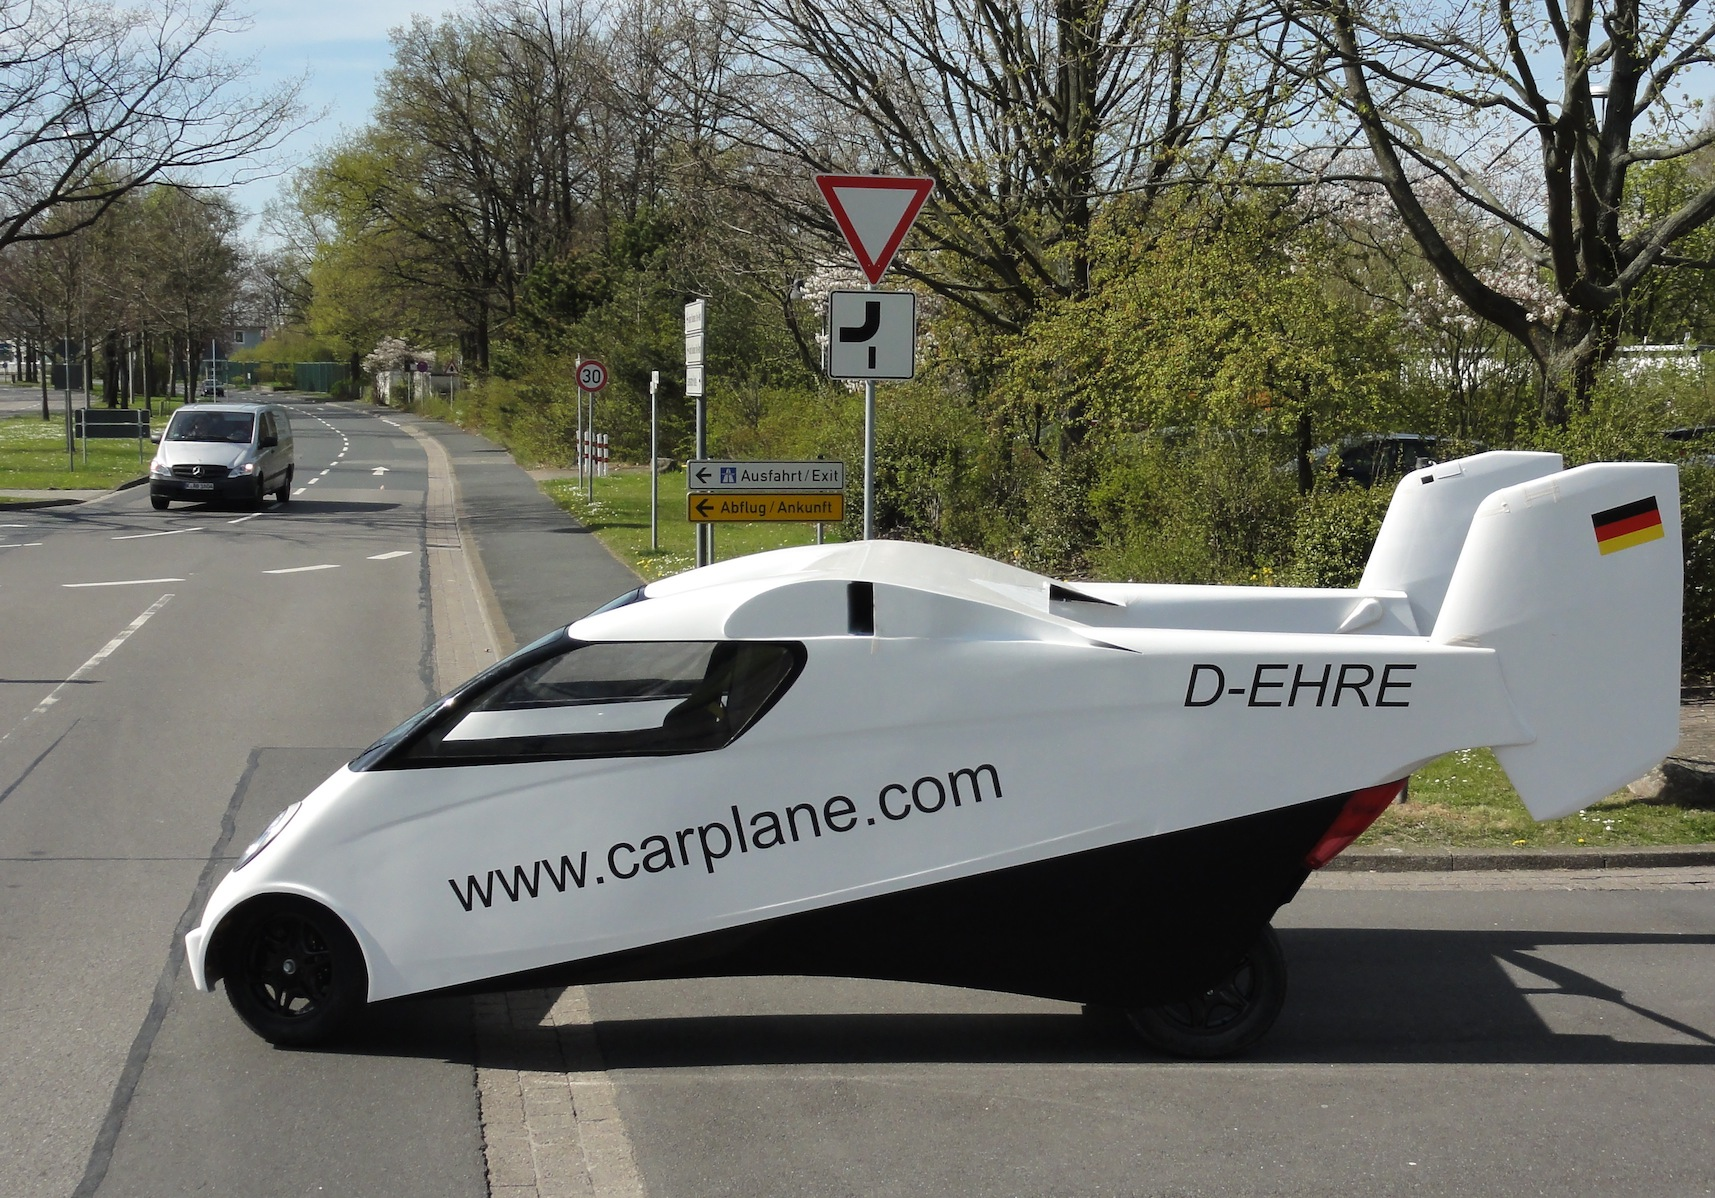 Carplane pulling onto the autobahn in Germany. (Carplane)